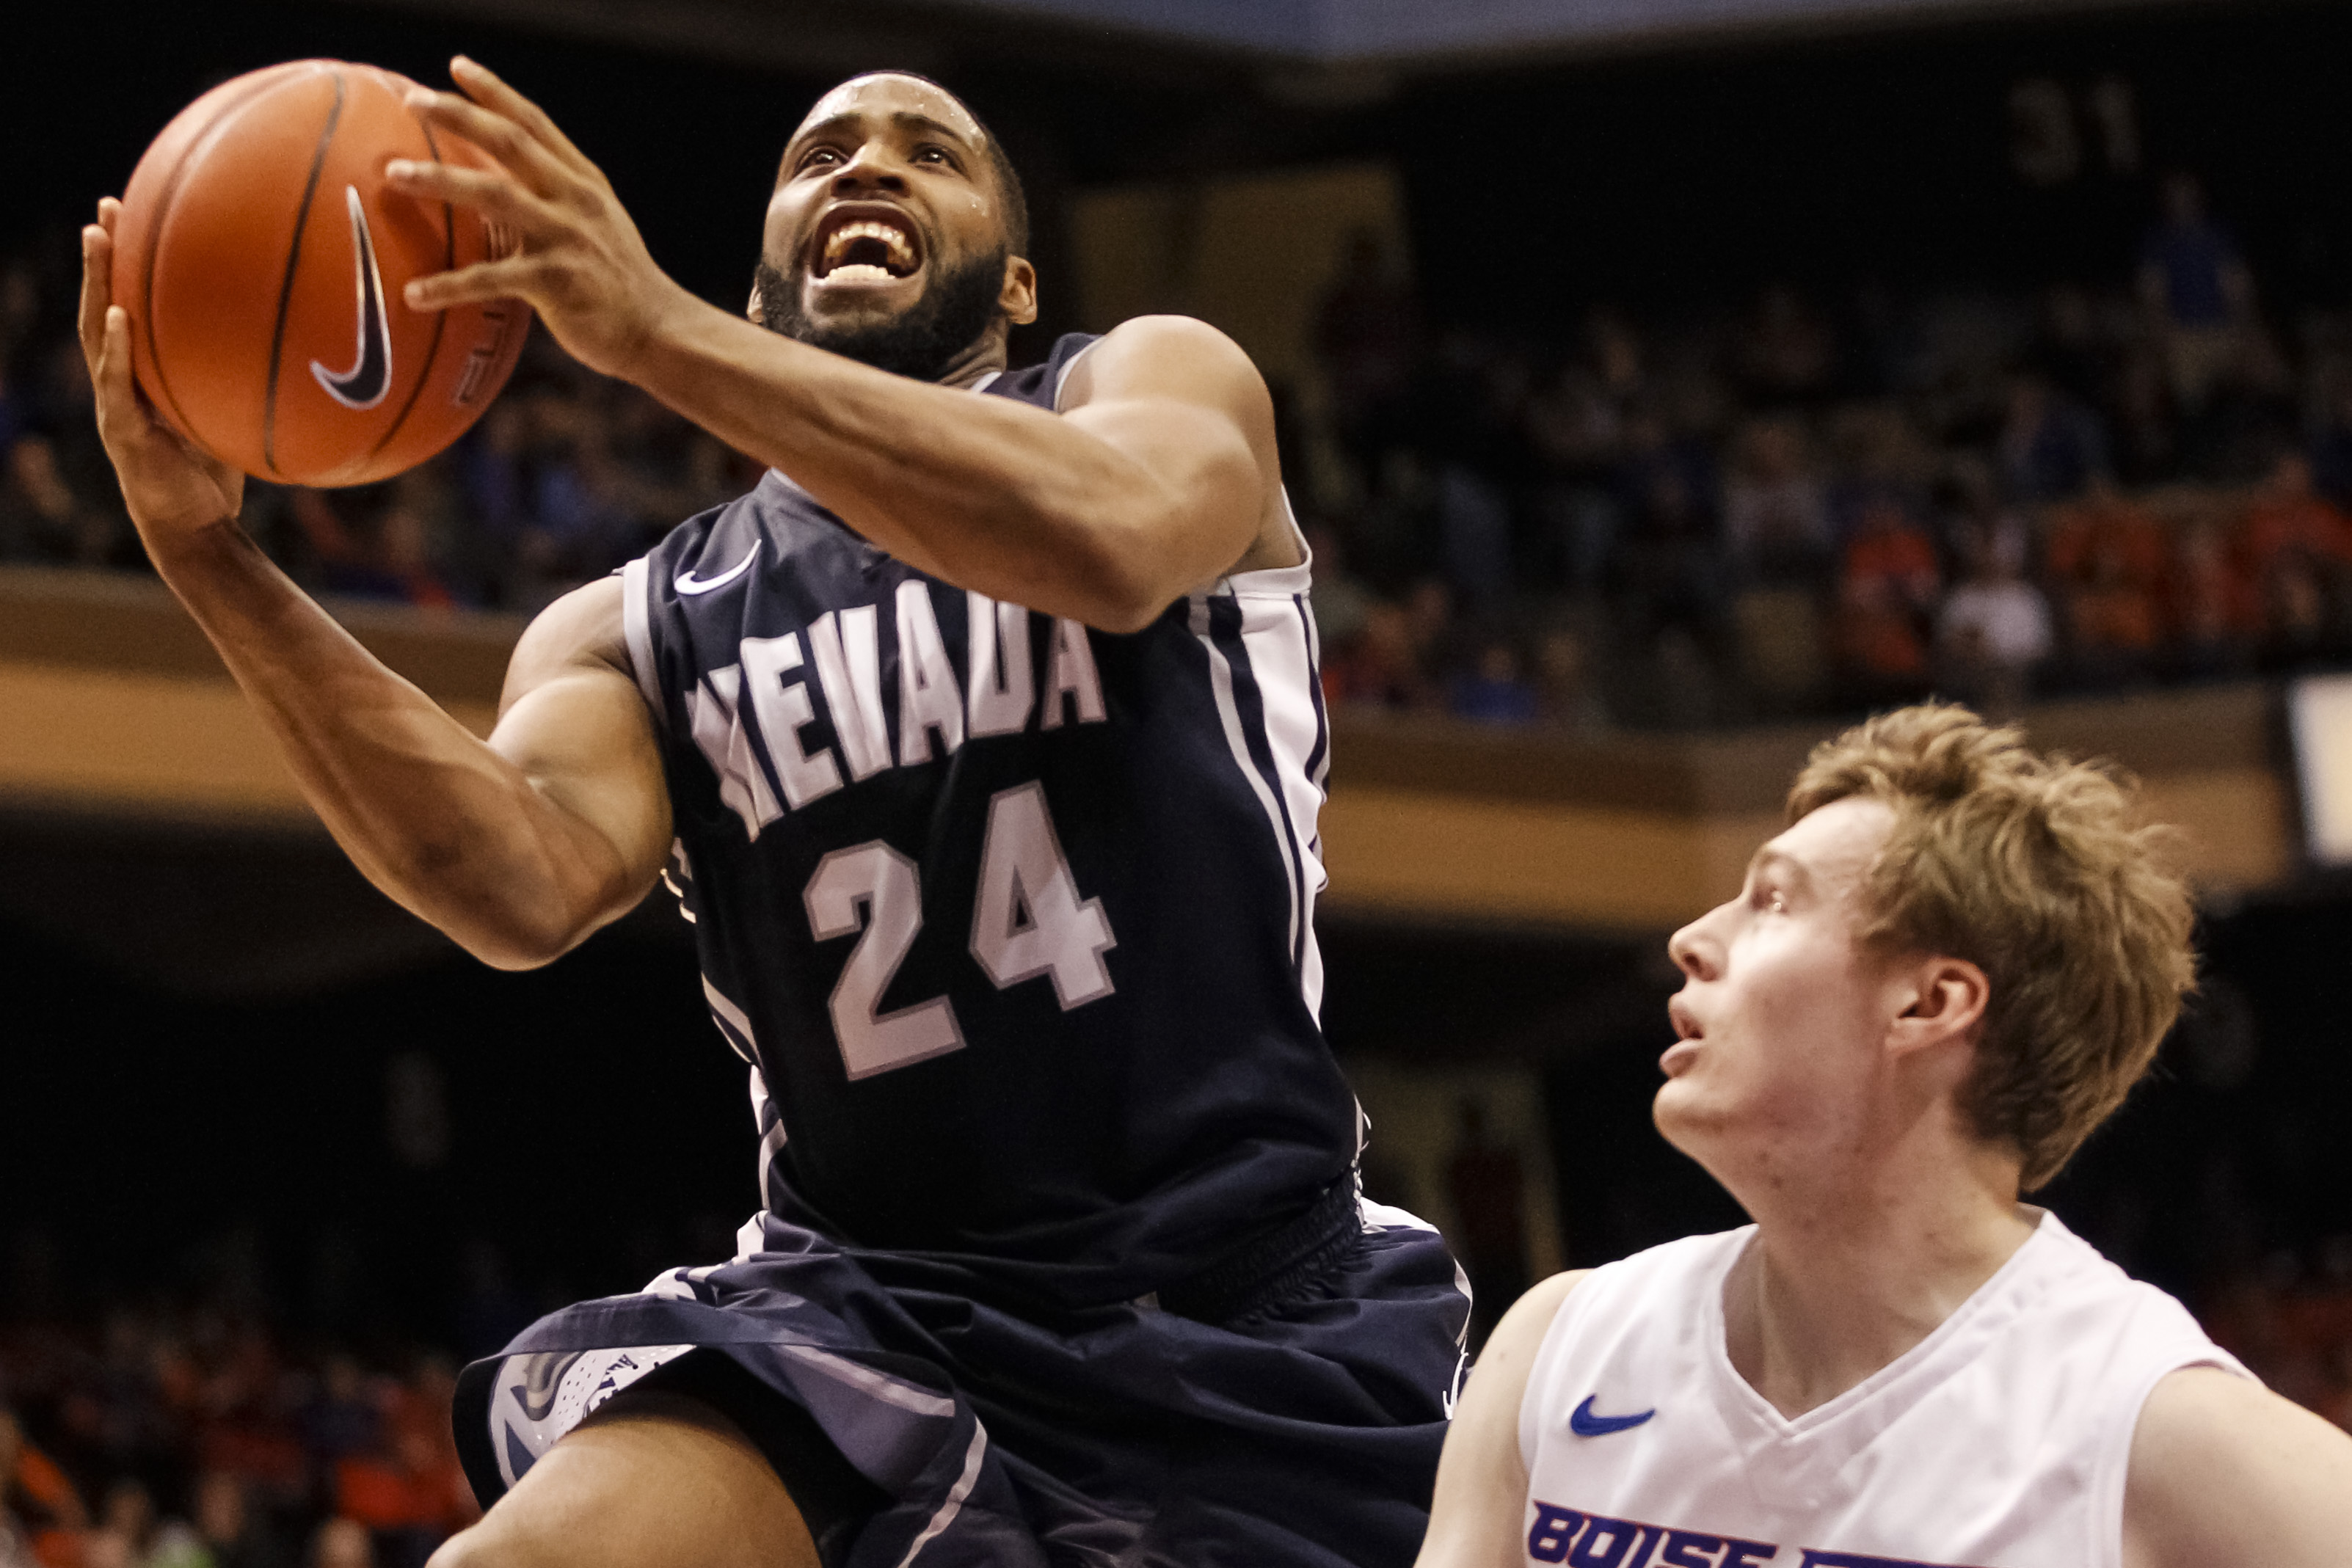 Burton completed his college career at Nevada, and scored in top 30 in three of the five events in the Draft Combine.